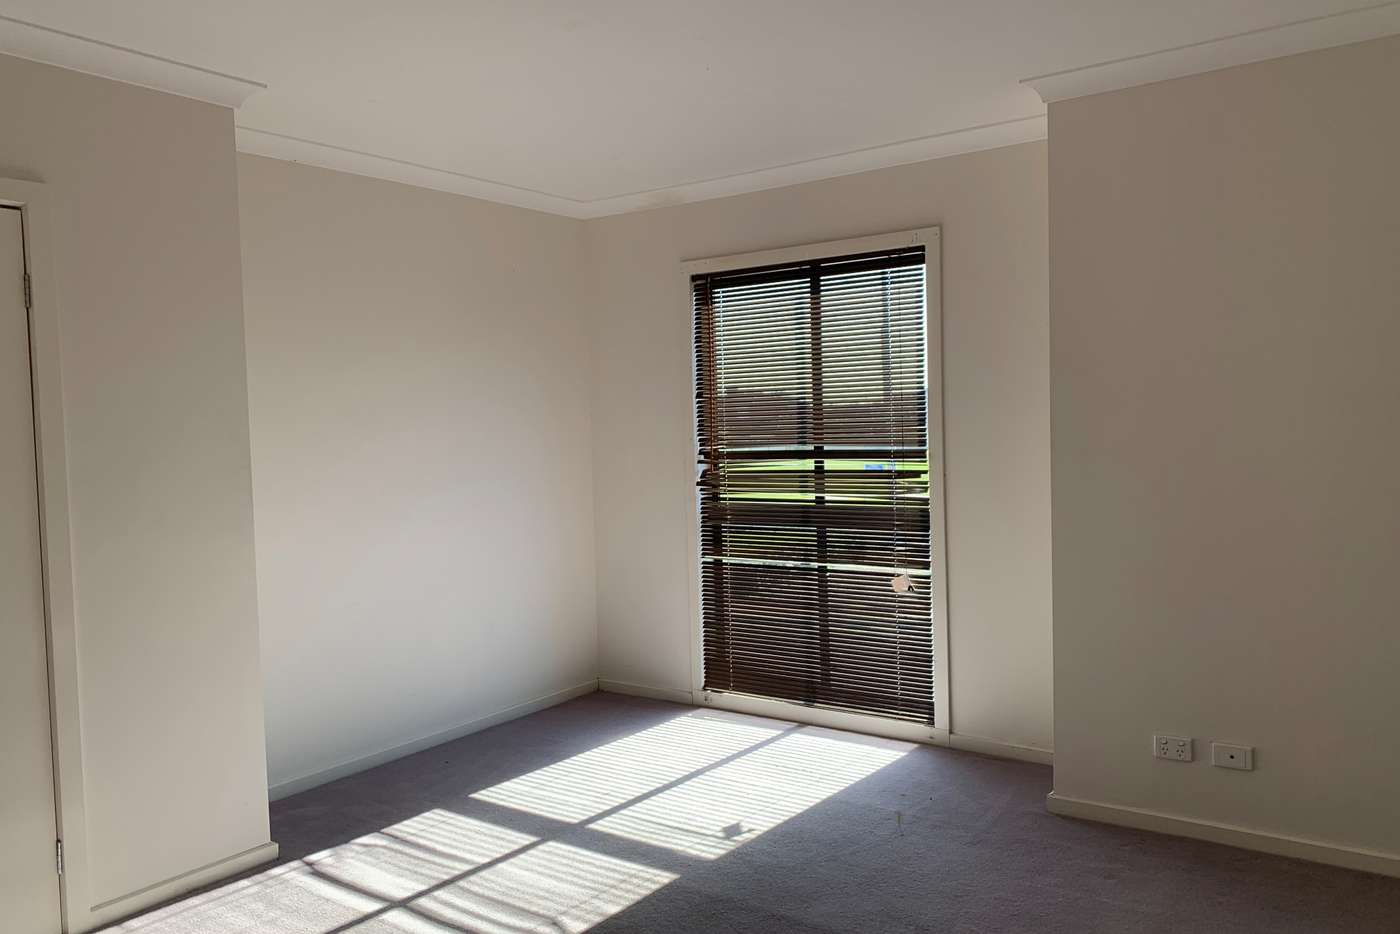 Sixth view of Homely townhouse listing, 155 The Avenue, Sunshine West VIC 3020